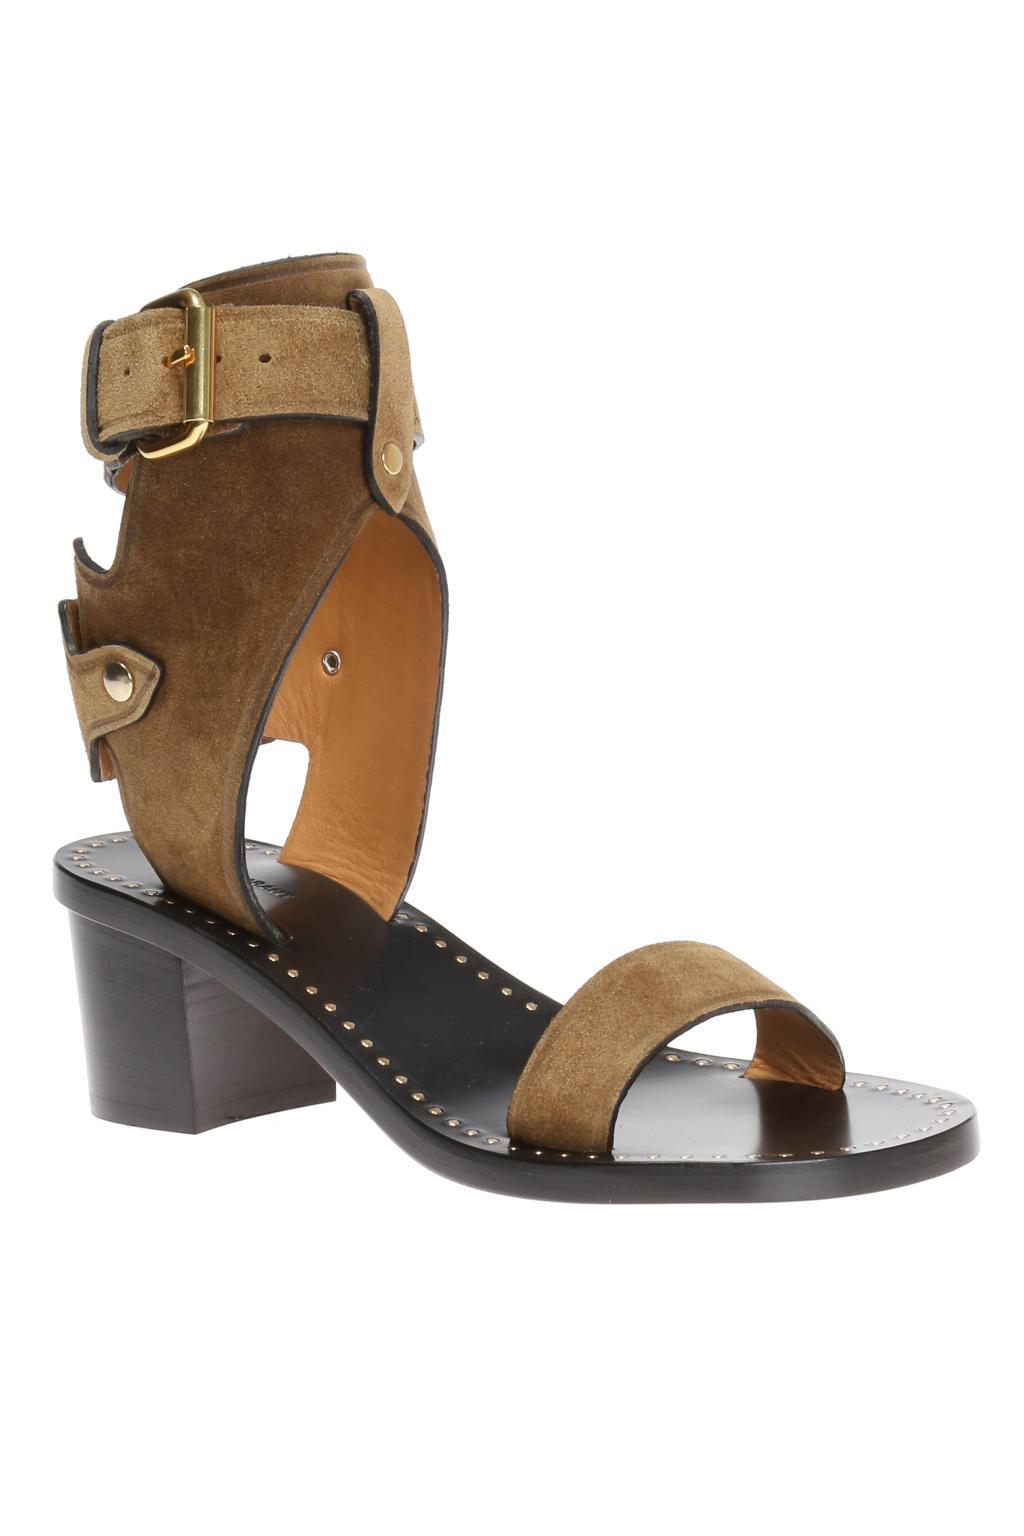 311f47c09d1 ... Brown  jaeryn  Heeled Sandals - Lyst. View fullscreen